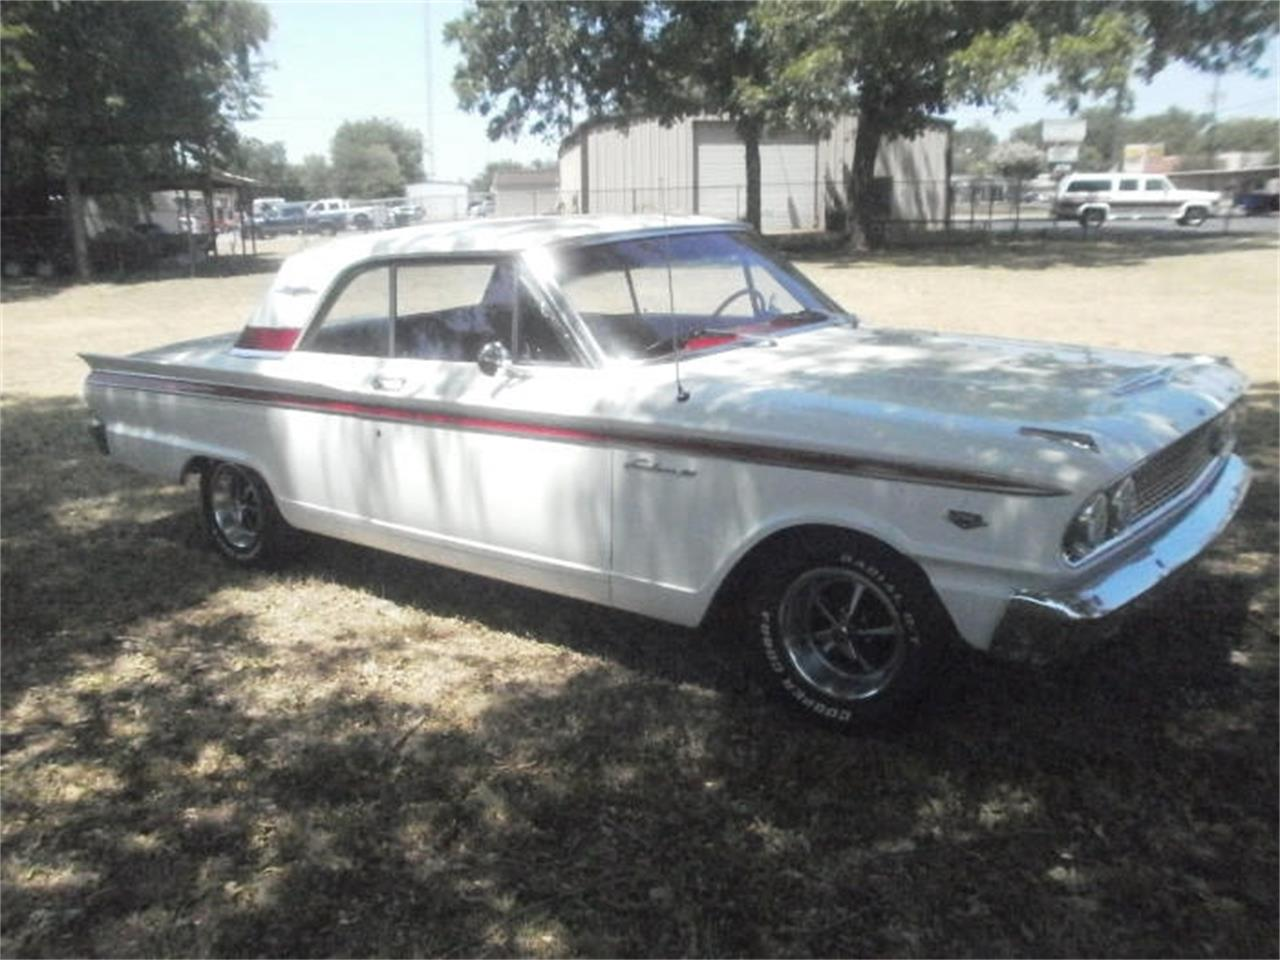 For Sale: 1963 Ford Fairlane 500 in Cleburne, Texas